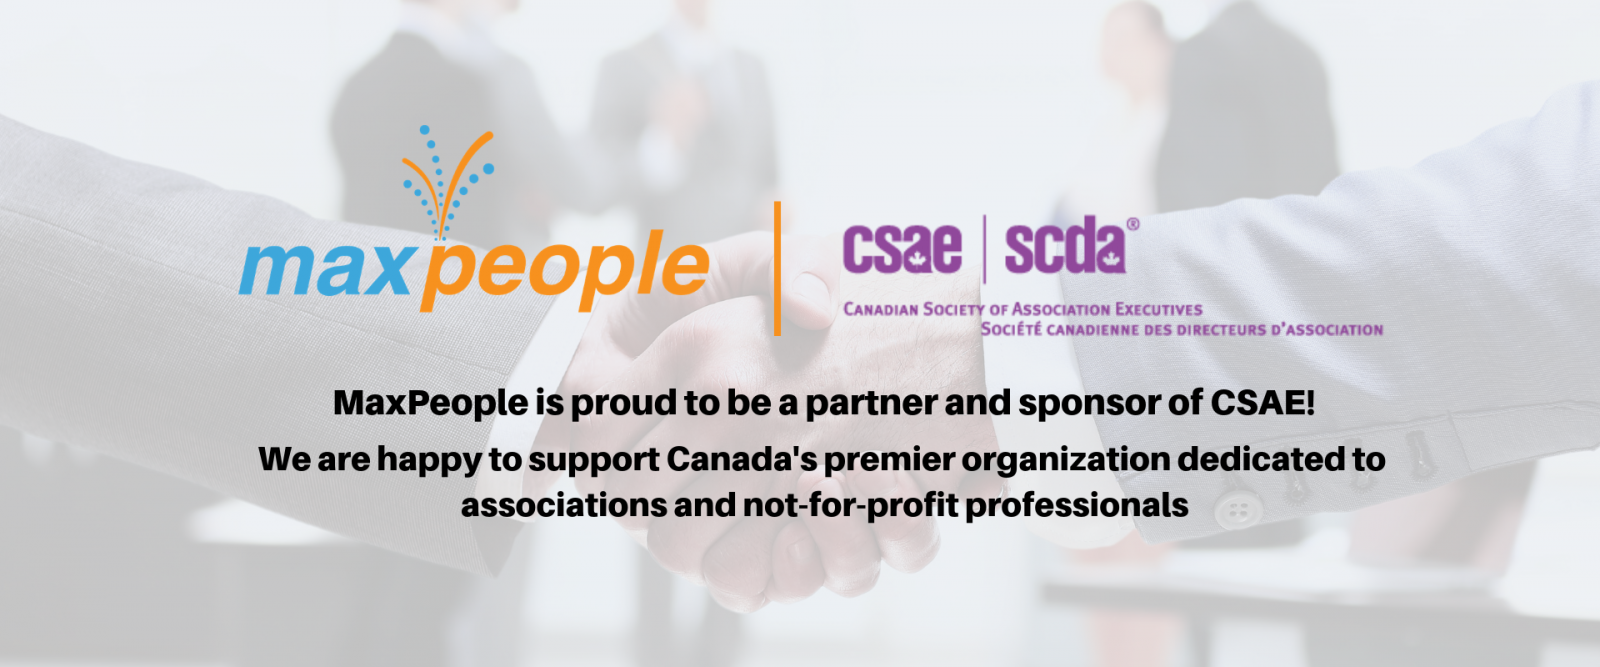 MaxPeople is proud to be a partner and sponsor of CSAE